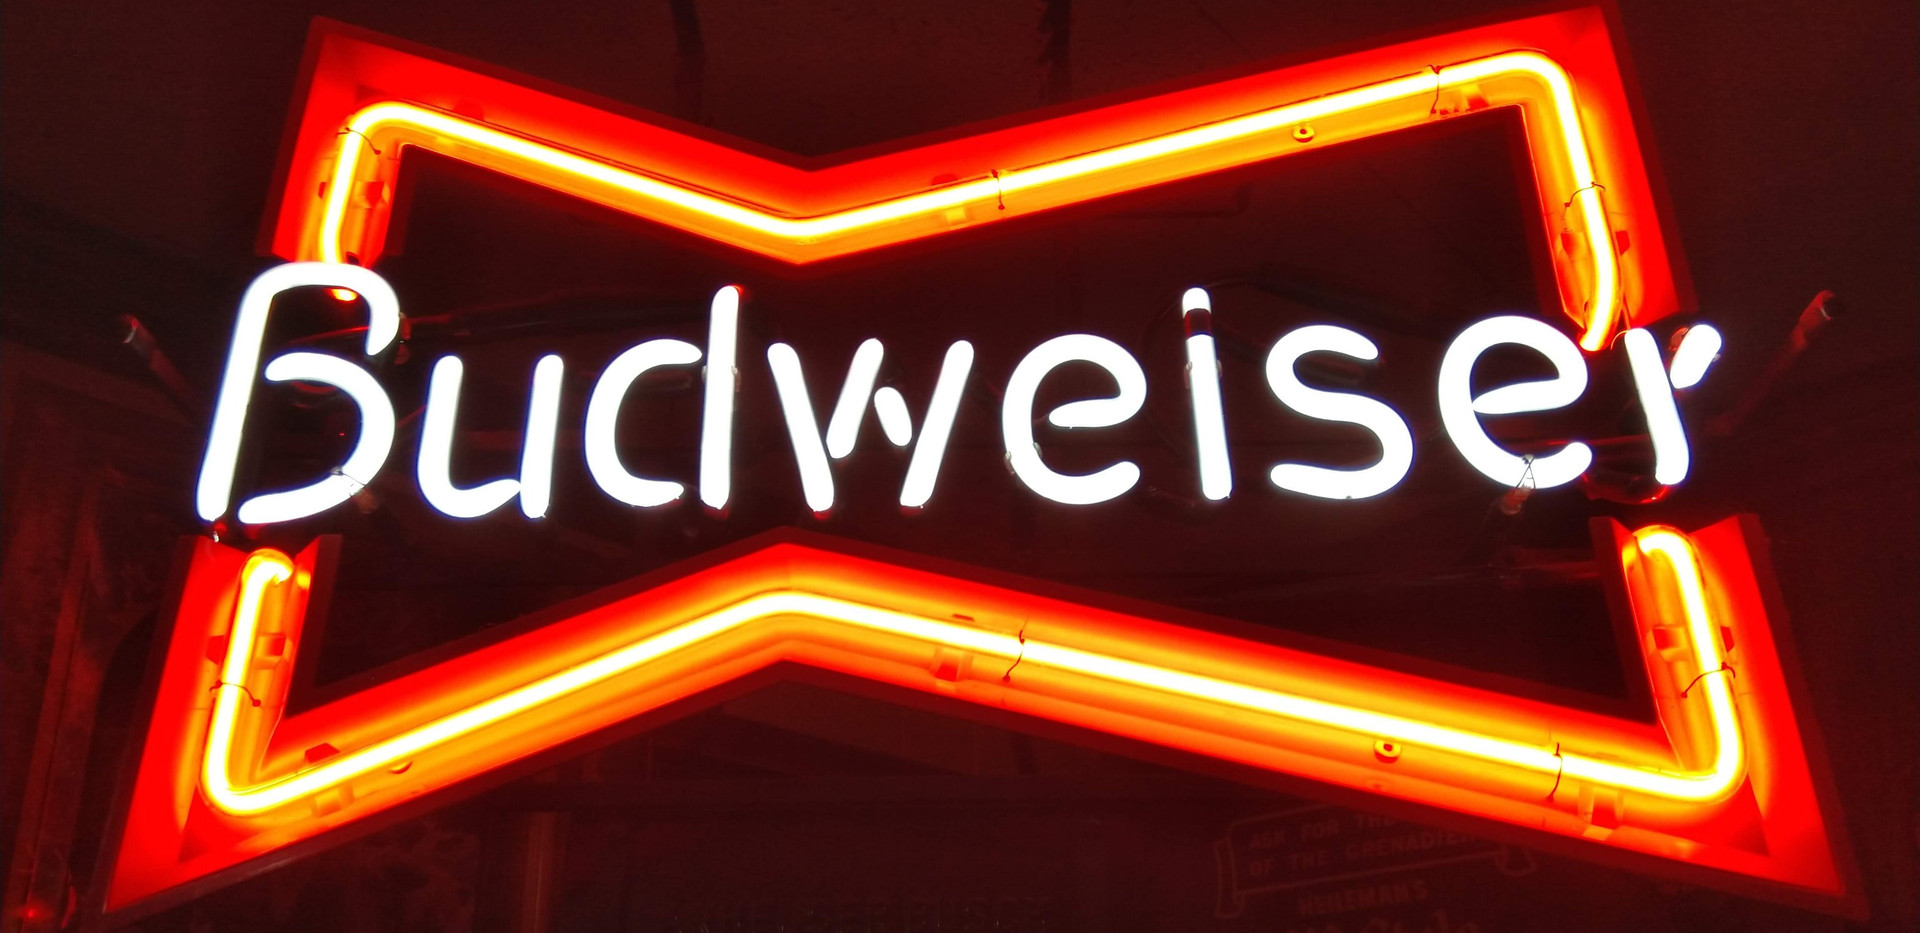 Budweiser Neon (Small)_edited.jpg